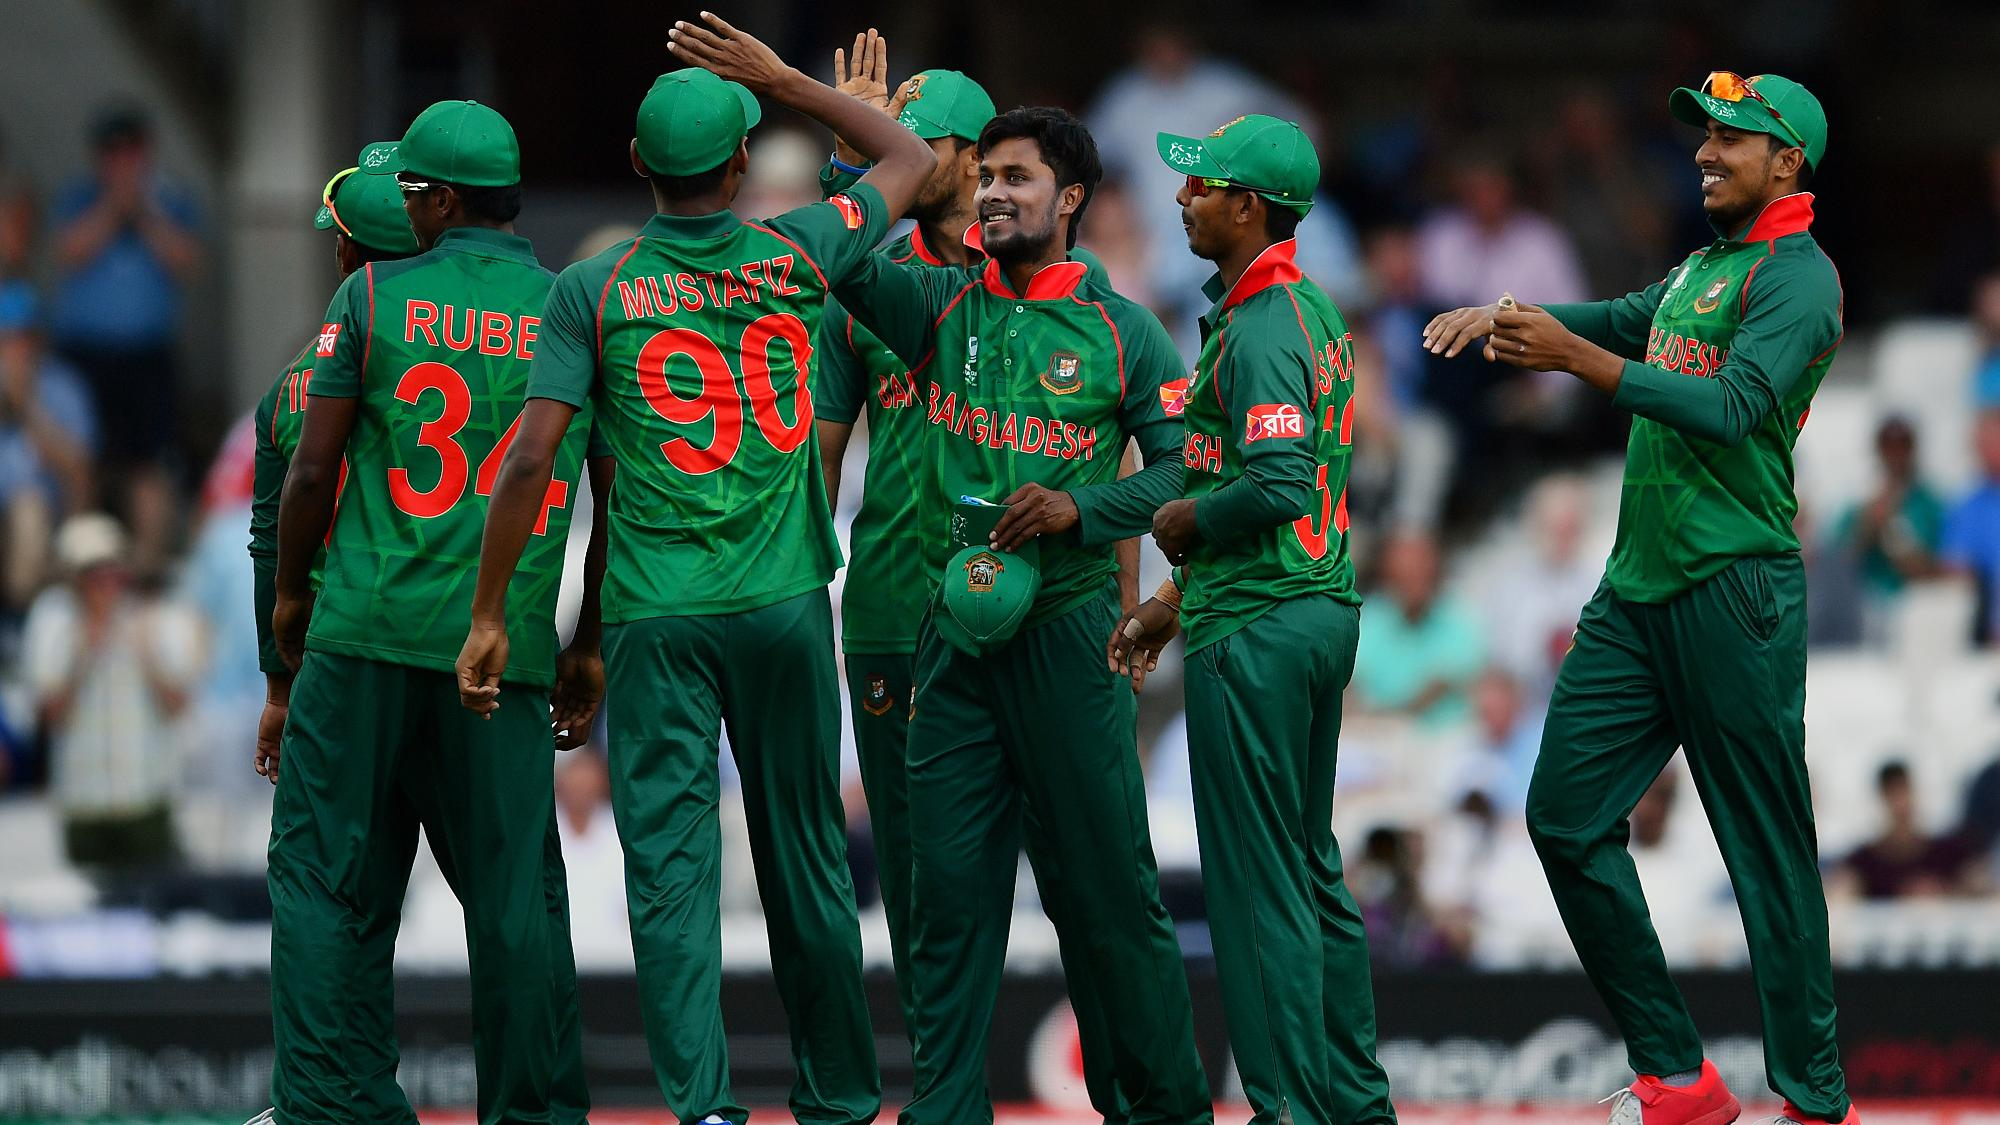 COMPETITION: Win a signed Bangladesh bat!